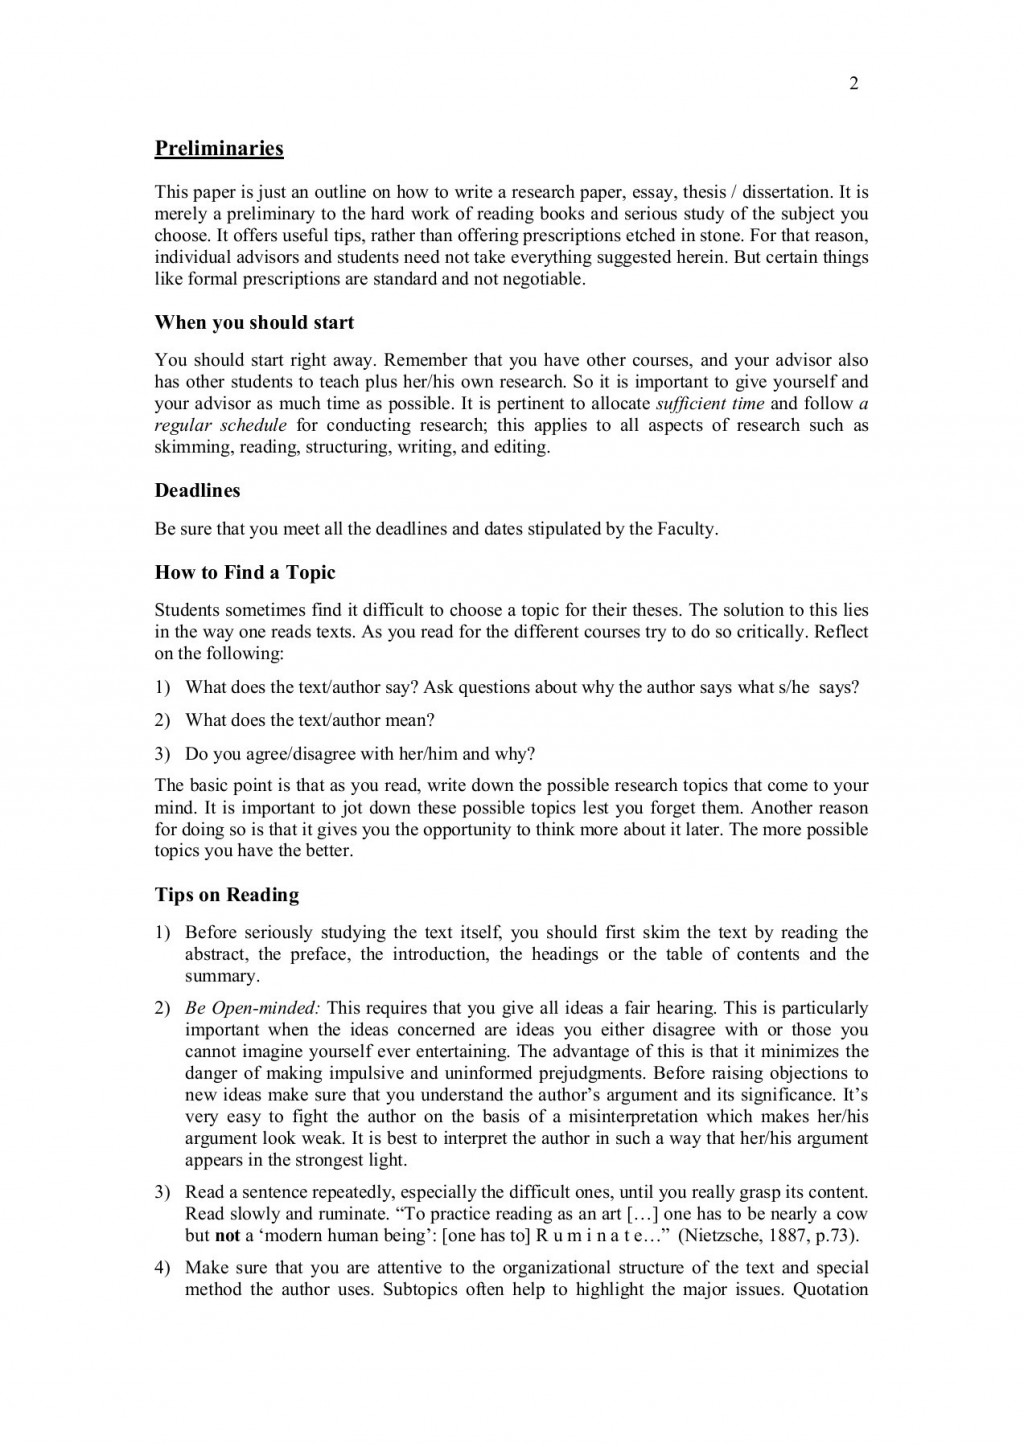 003 Research Paper Philosophy Of Religion Topics Awful Large